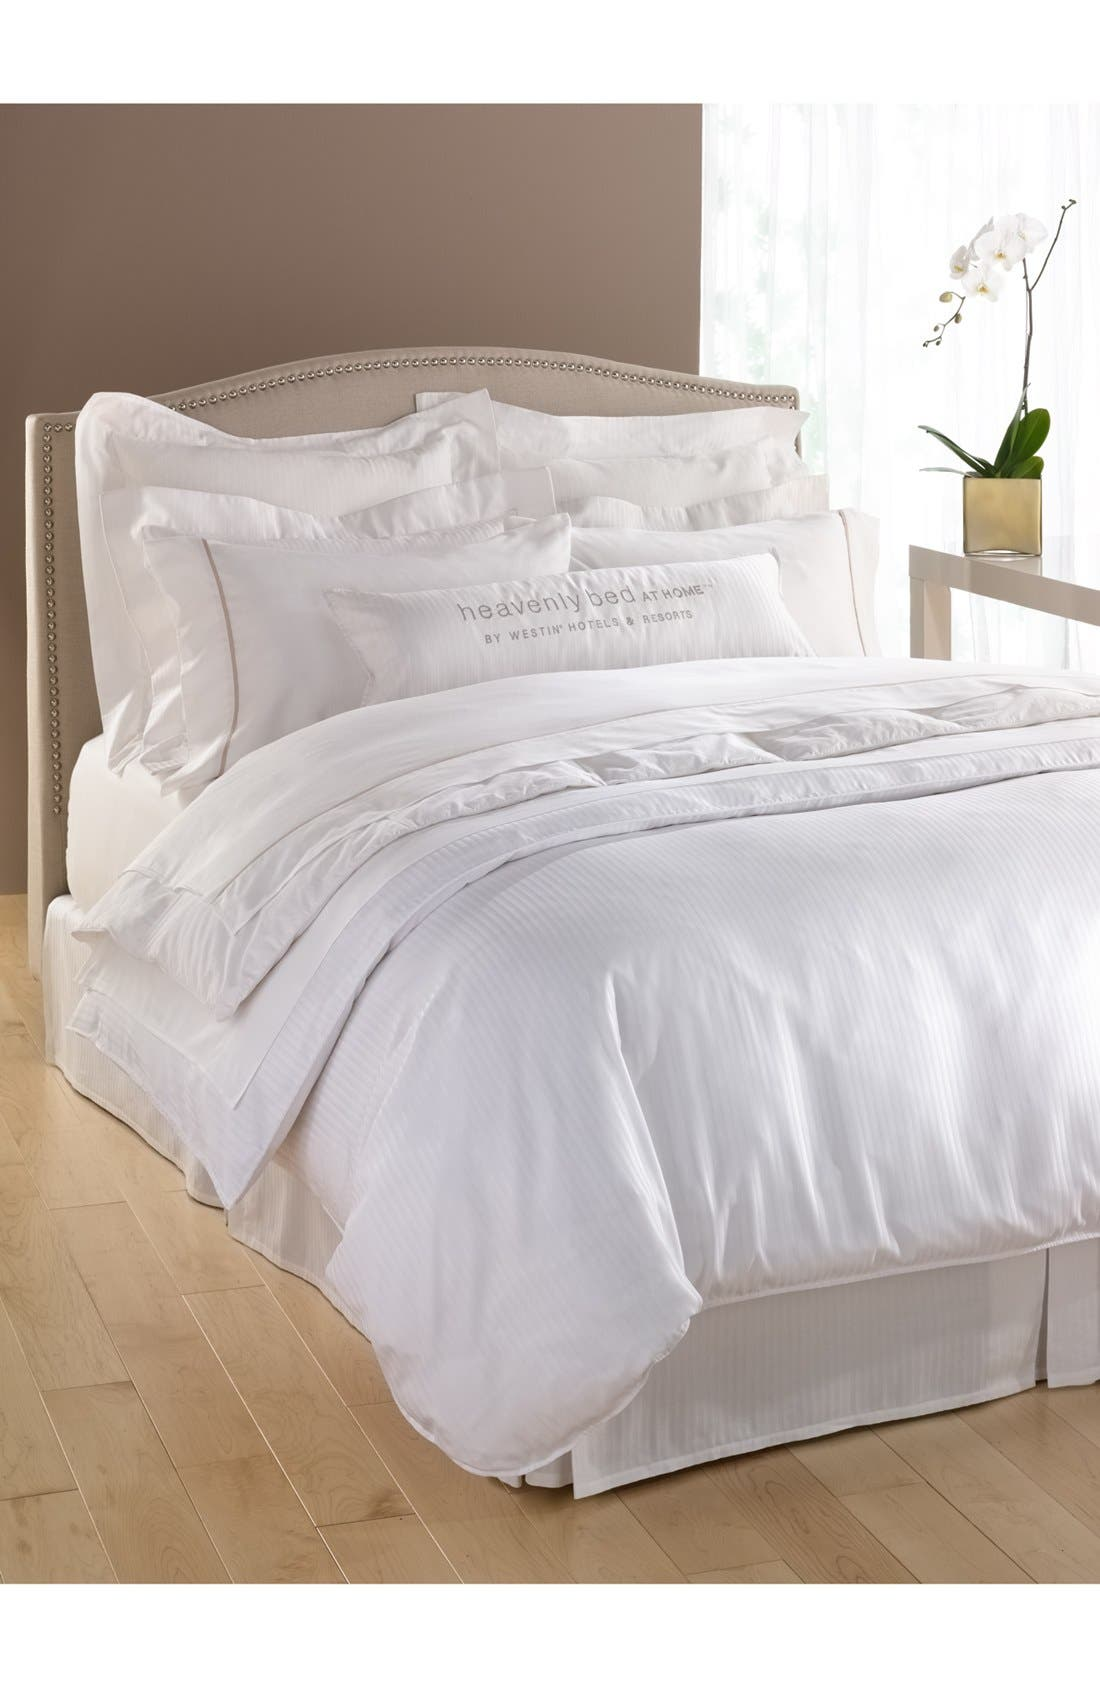 'Ultra Luxe' 600 Thread Count Flat Sheet,                             Alternate thumbnail 2, color,